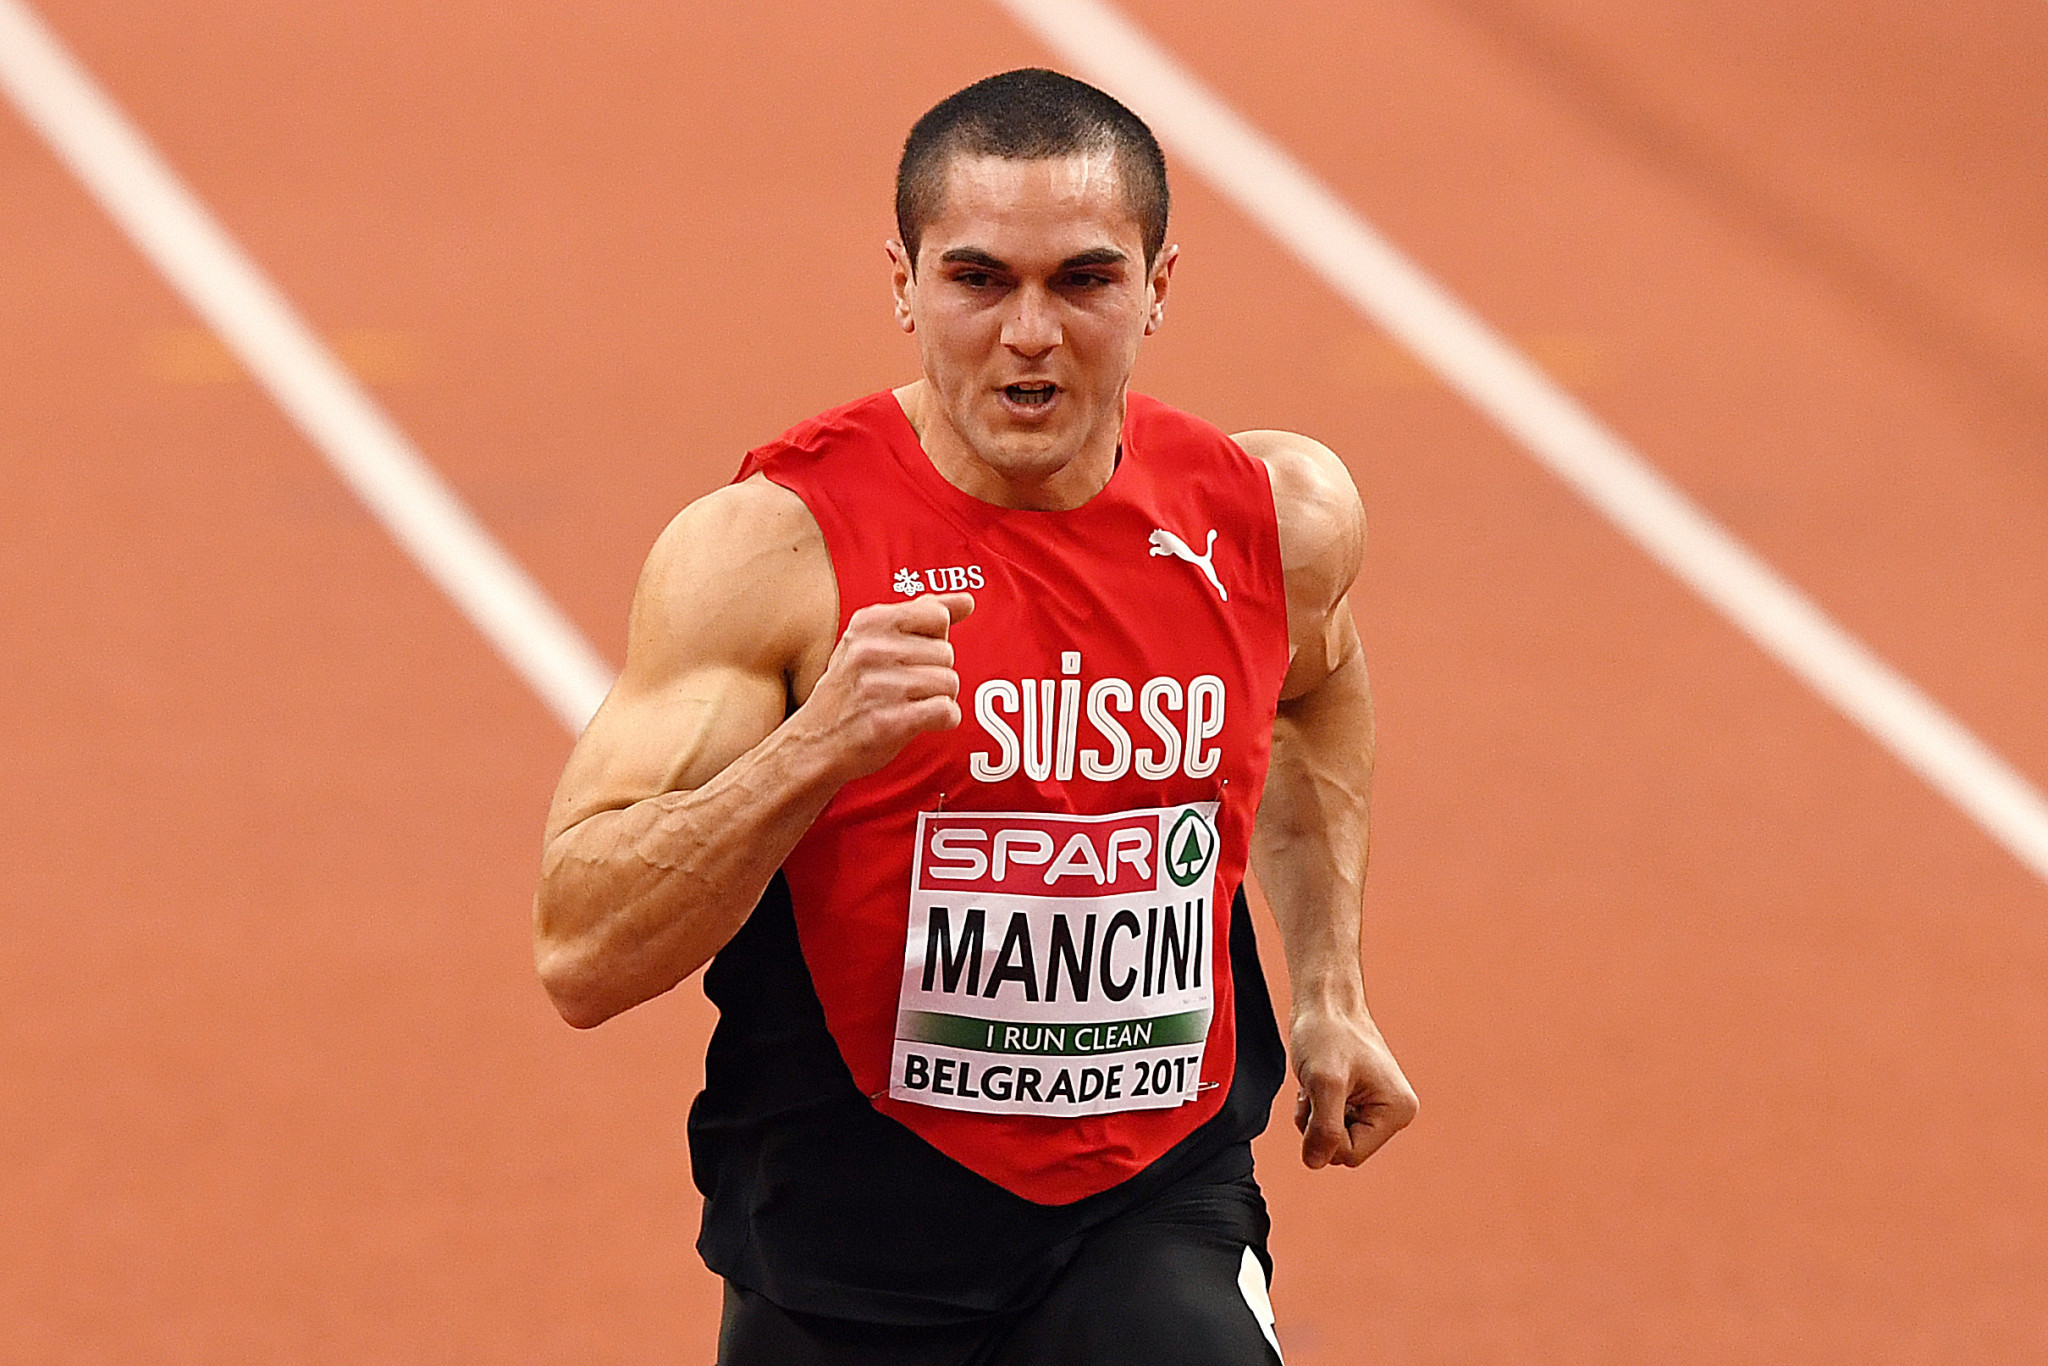 Switzerland have dropped sprinter Pascal Mancini from their team for the European Athletics Championships after he posted racist messages on social media ©Getty Images